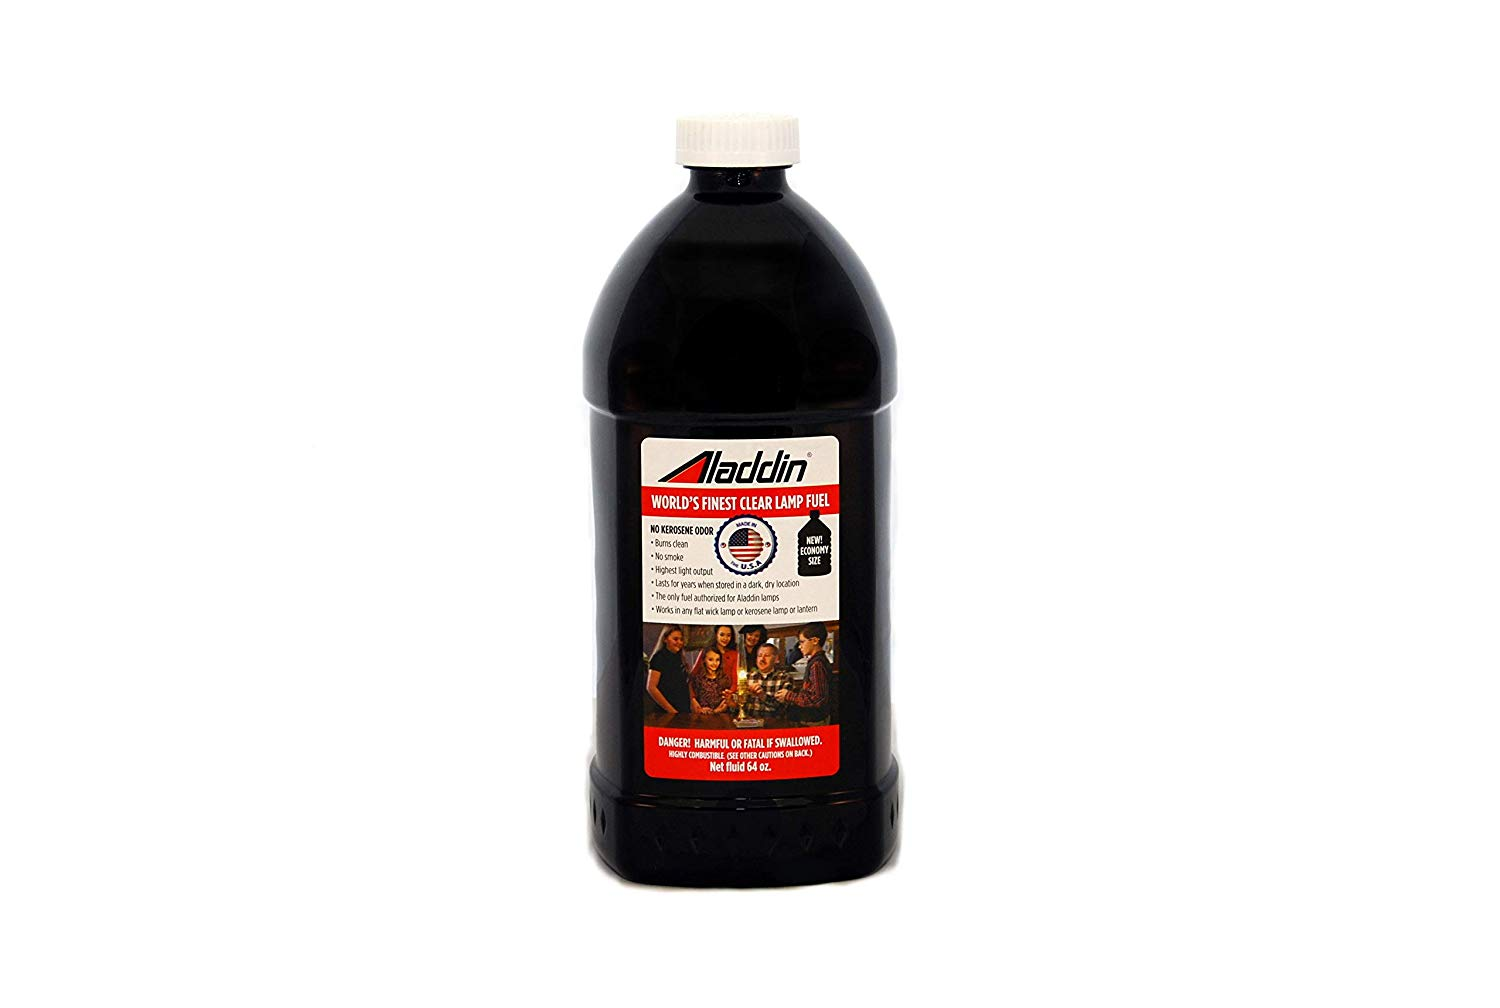 Aladdin lamp Kerosene oil fuel - 64 oz ( 2 litre )